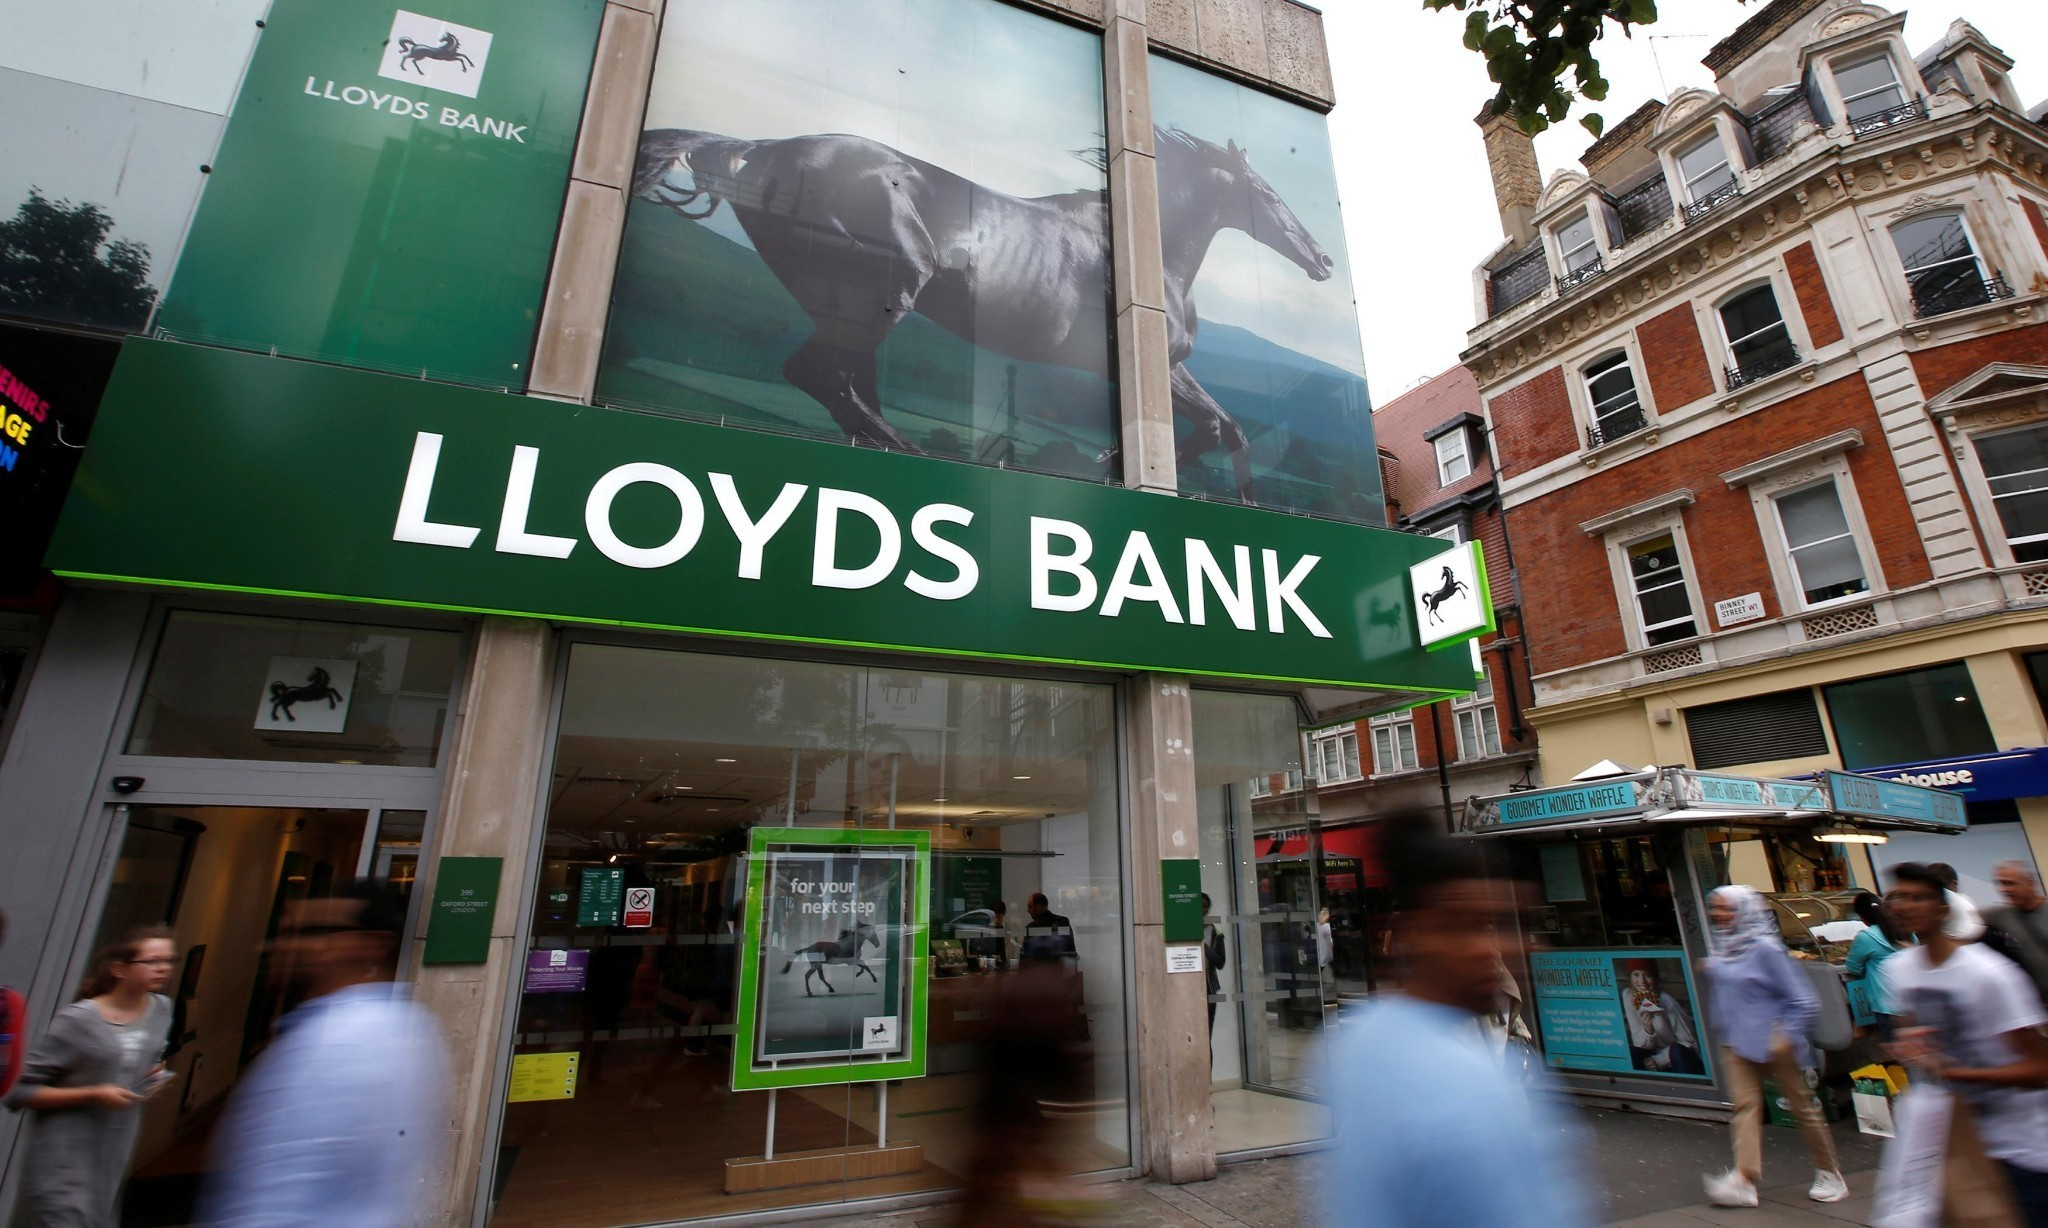 Fraud case and falling share price take shine off Lloyds's farewell to taxpayer